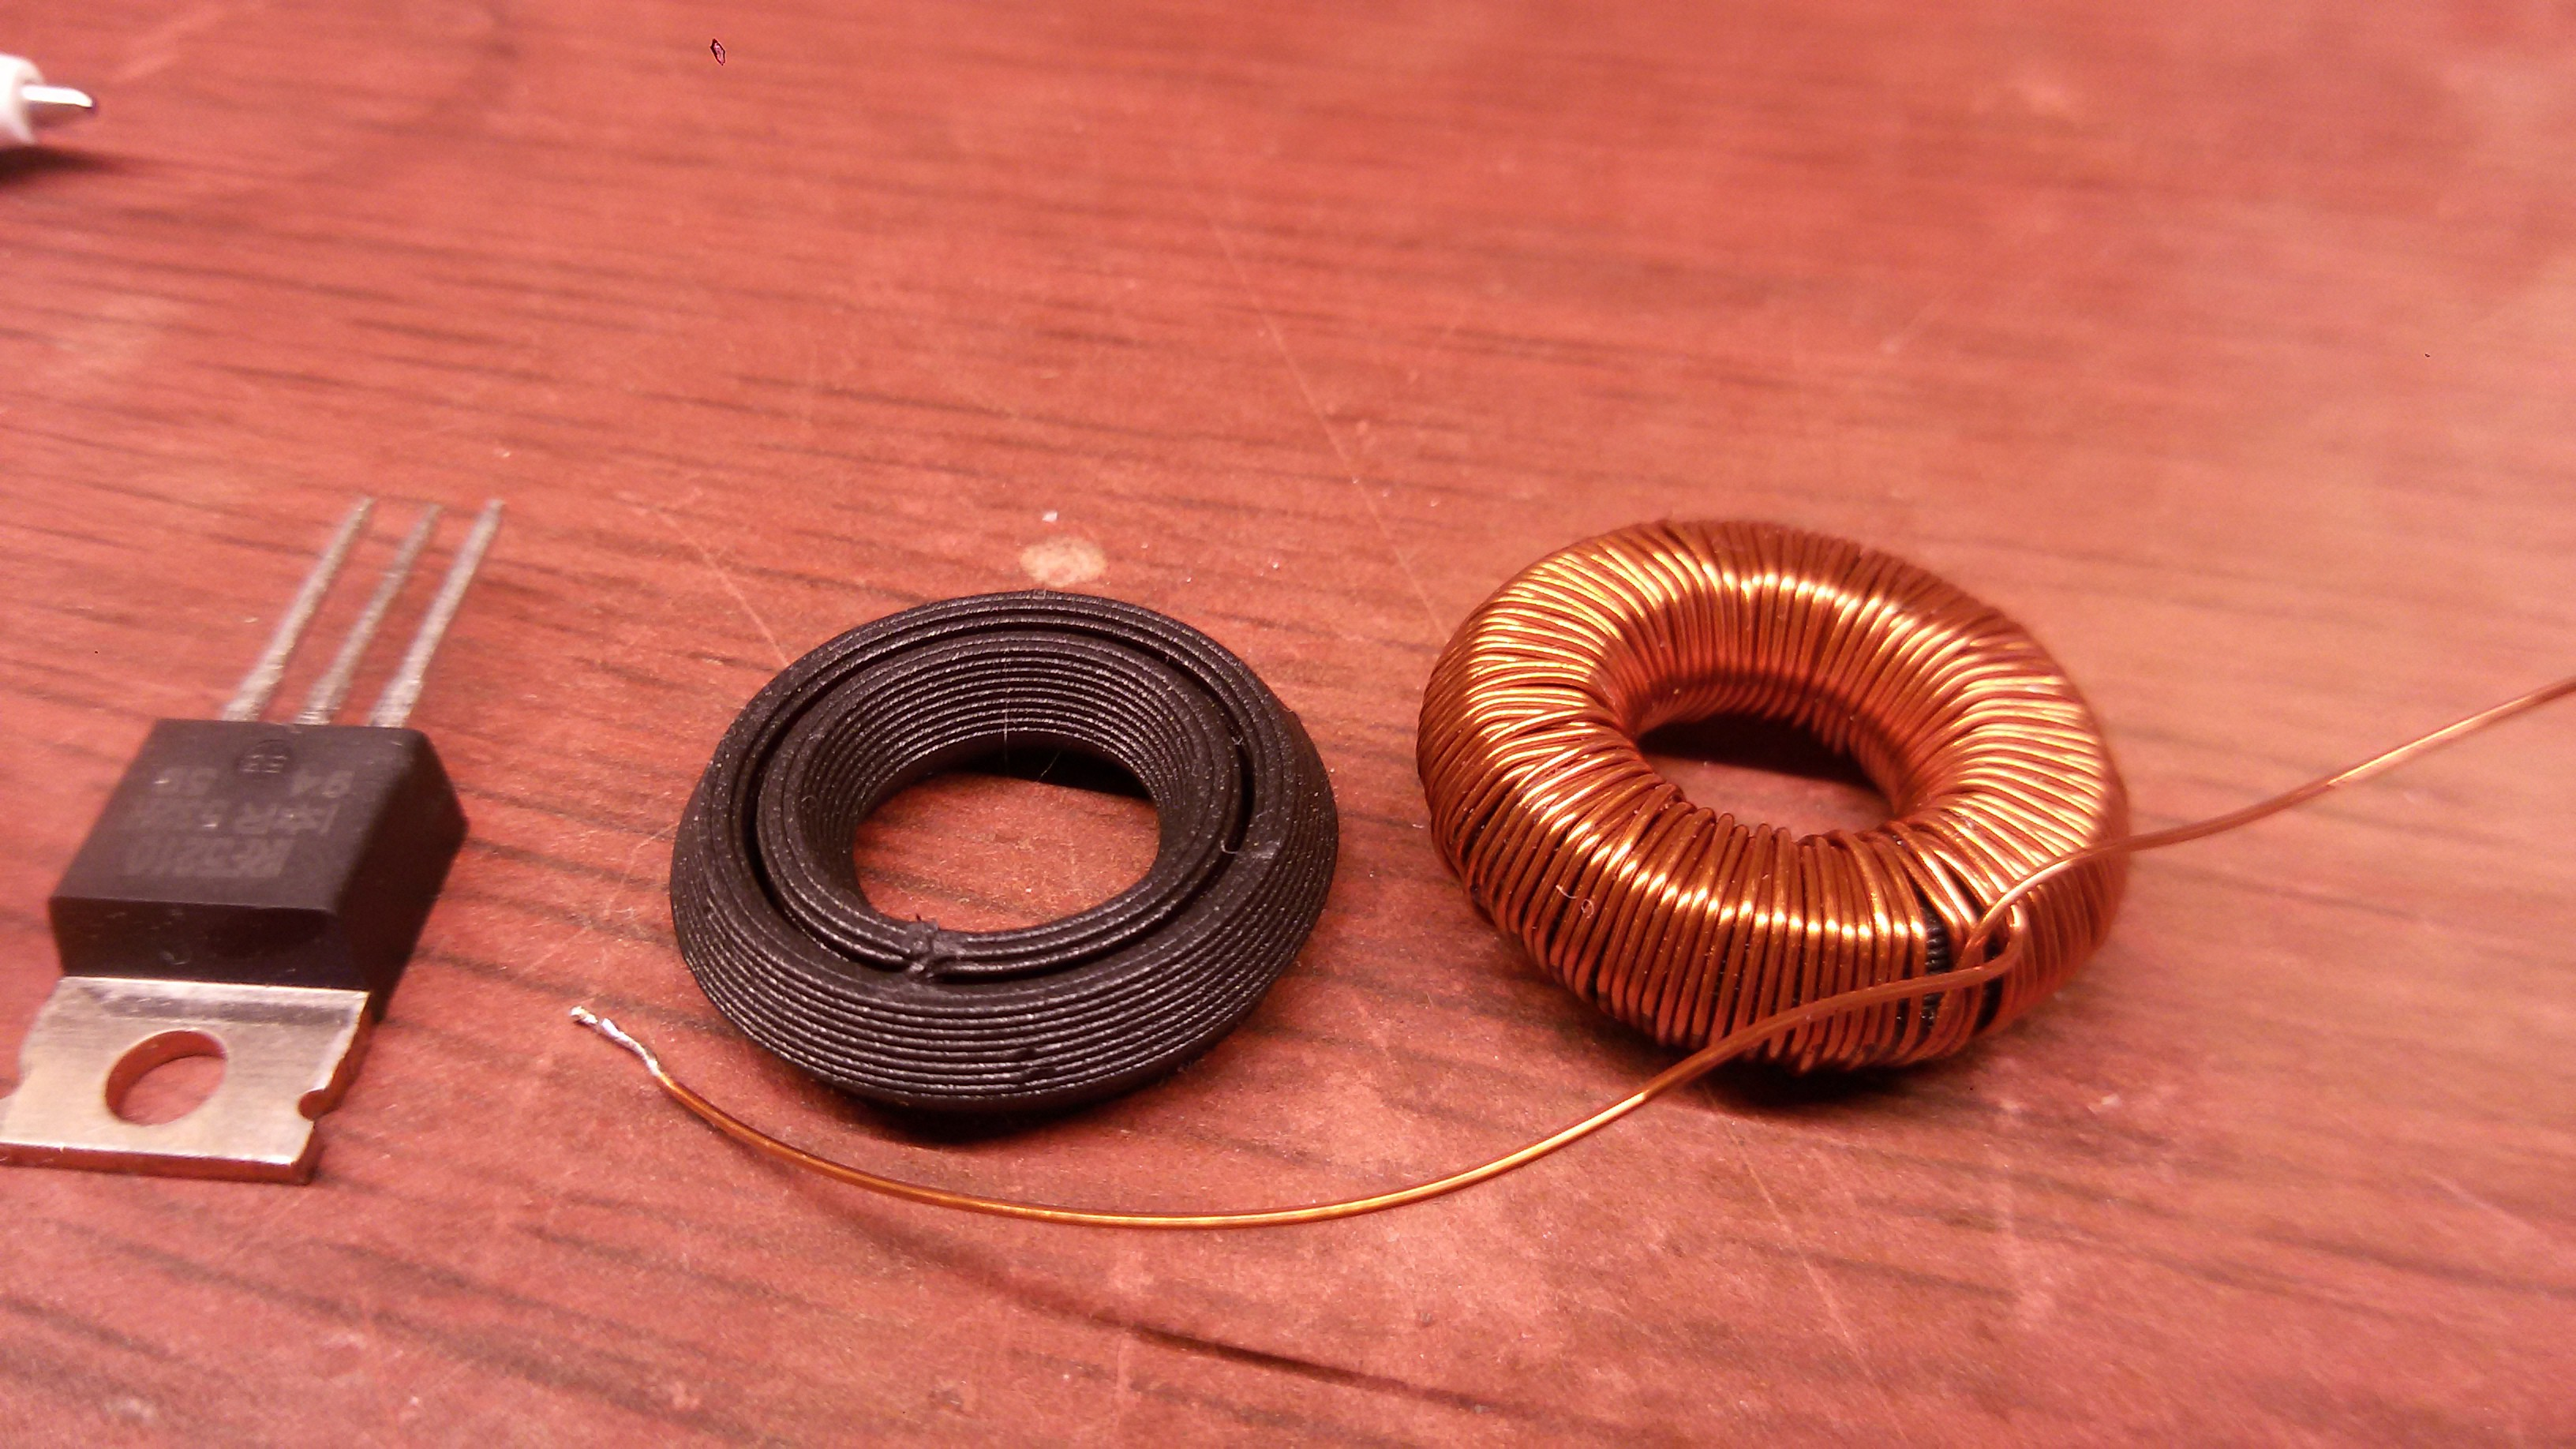 Measuring Blackmagic3ds Ferromagnetic Filament Coils Of Copper Wire Are Commonly Used In Electrical Inductors The Coil Has N 124 Turns It Measures 0527 Ohms Dc Resistance And An Inductance 21 Uh